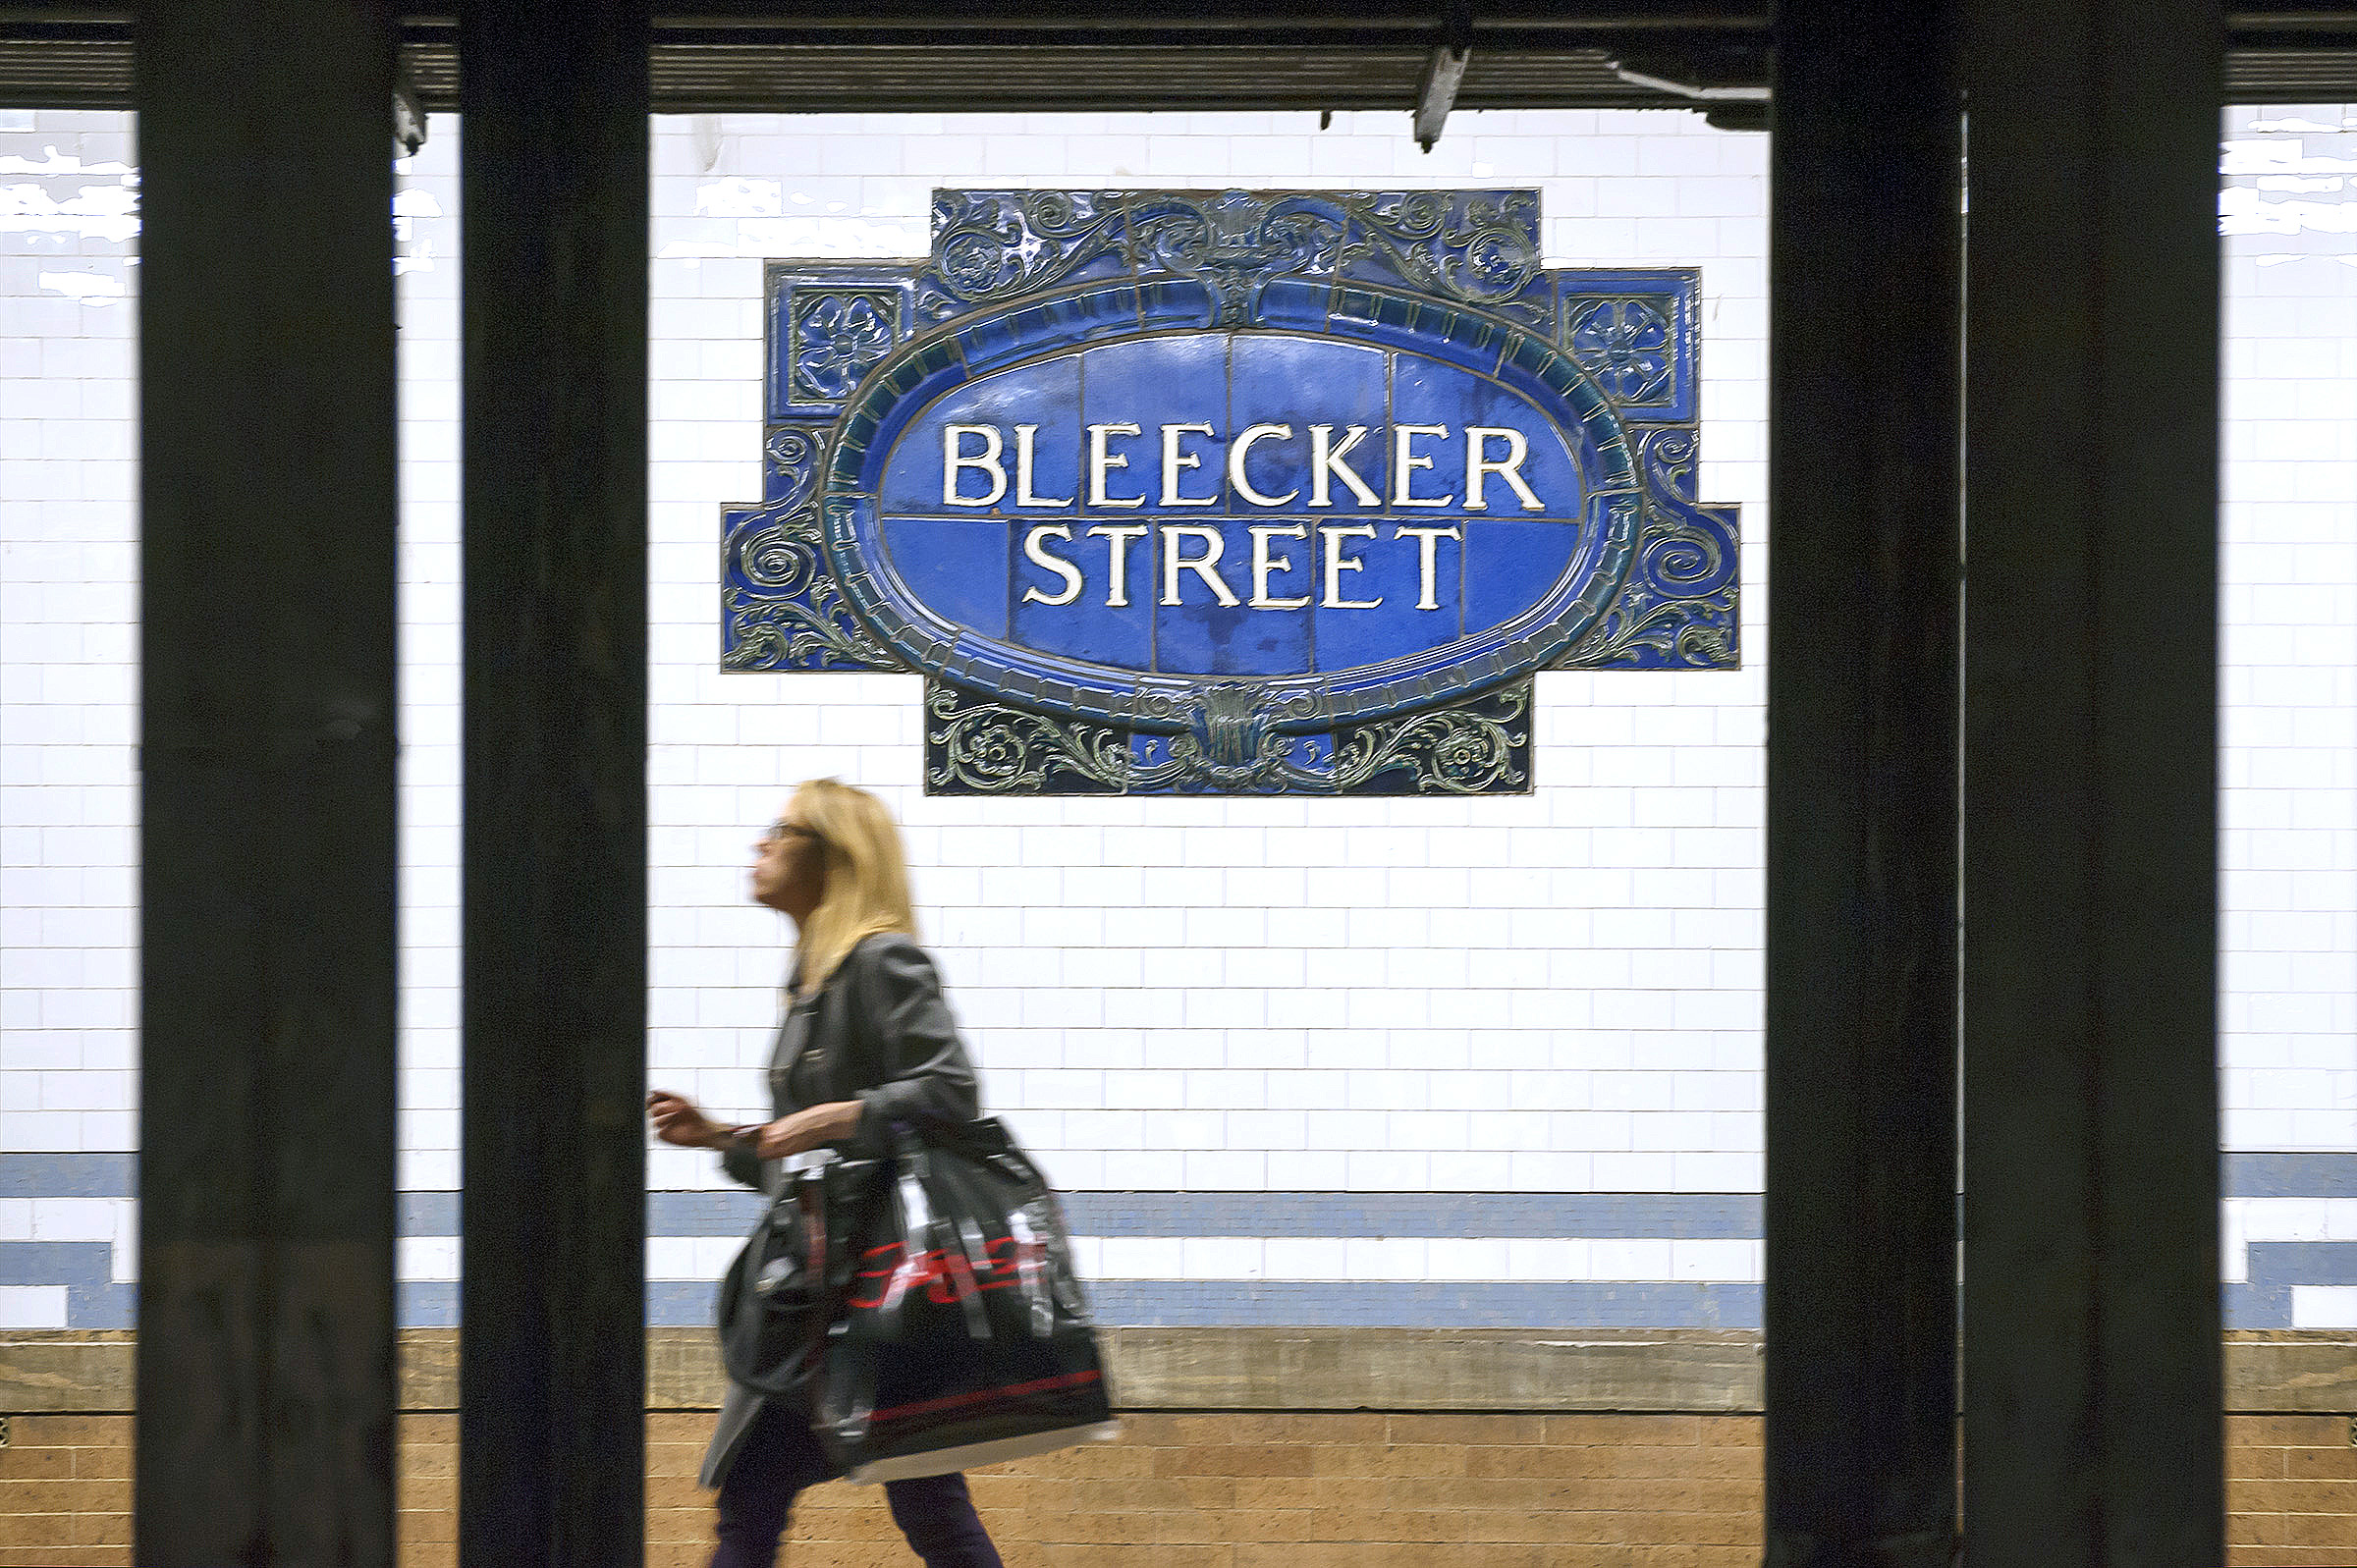 Bleecker Street Subway Station